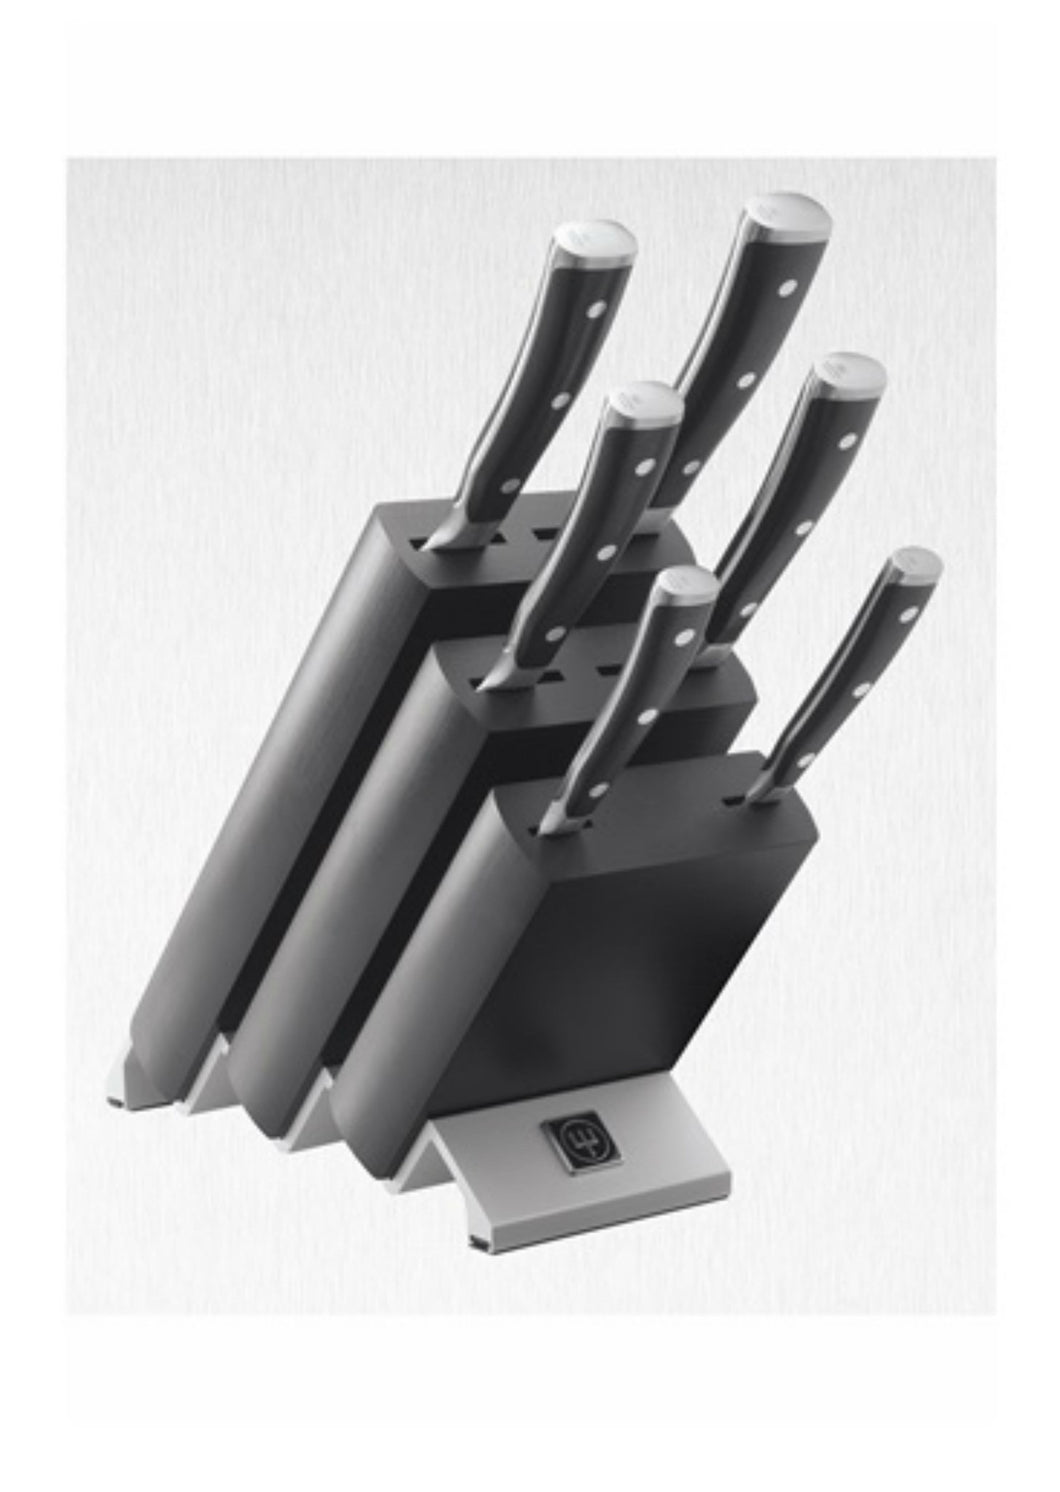 Wüsthof Ikon Black 6 Piece Knife Block Set